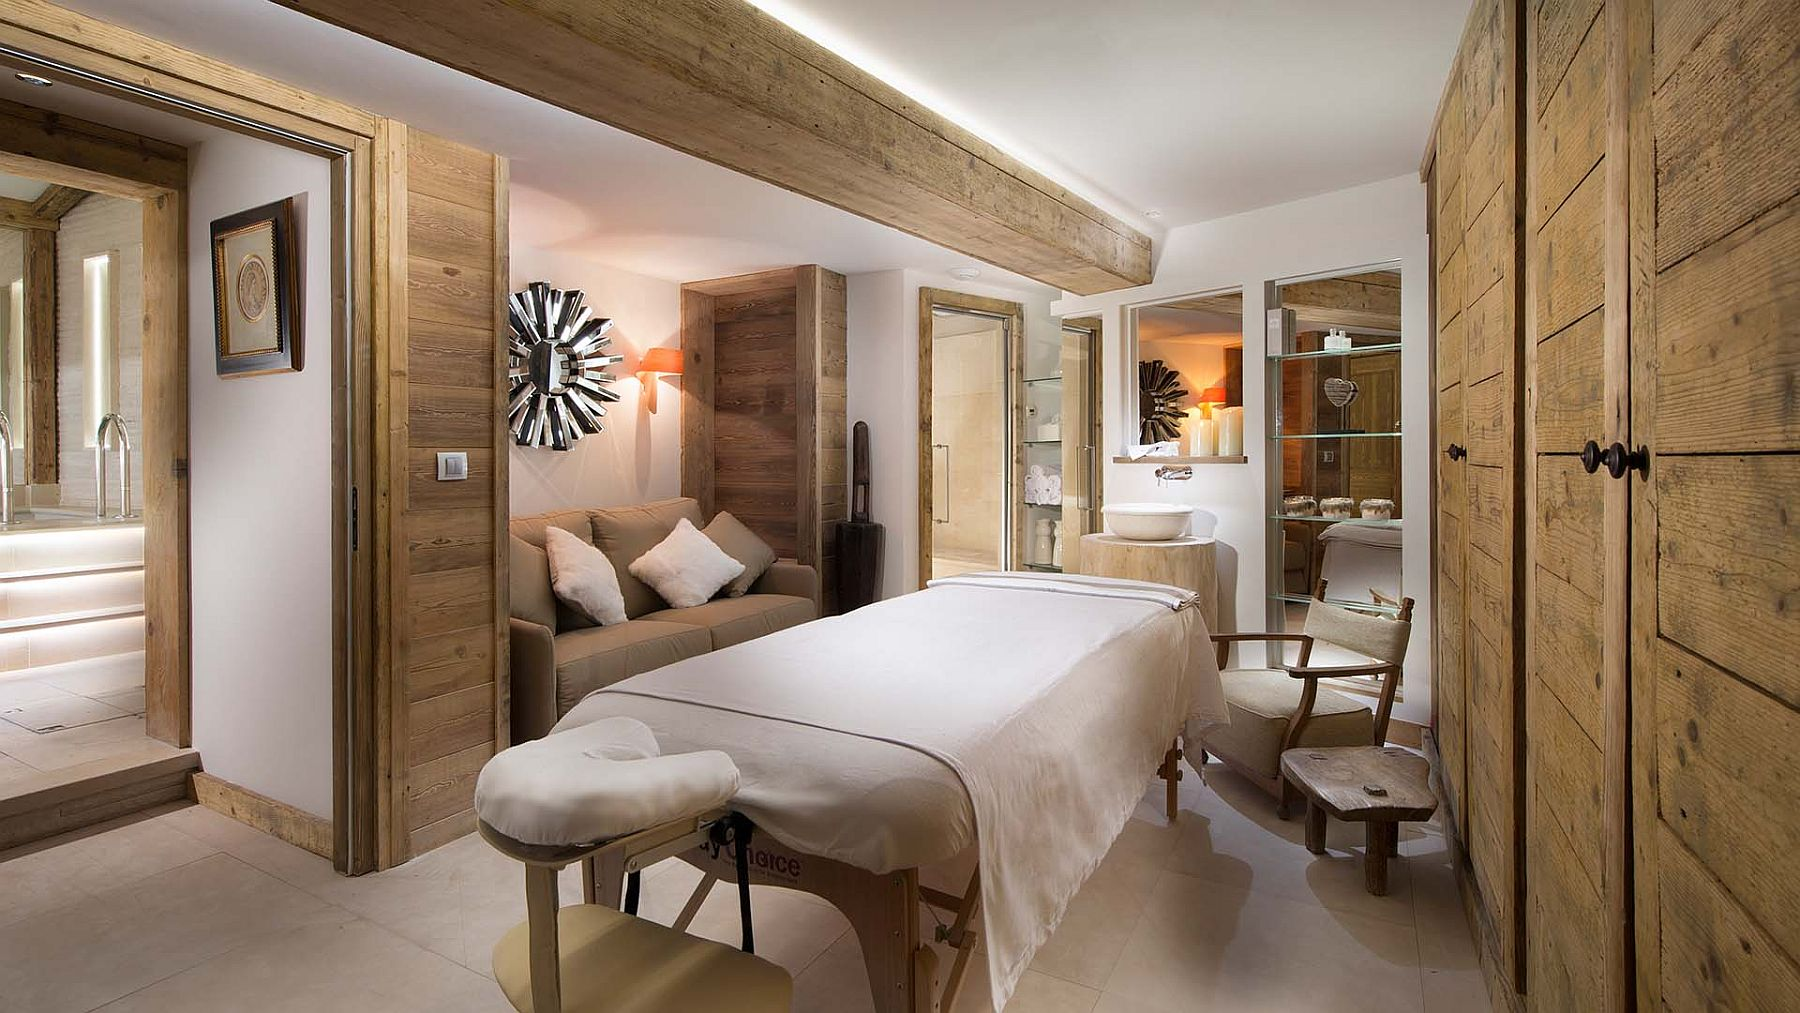 Spa and massage room at fabulous French chalet among the alps